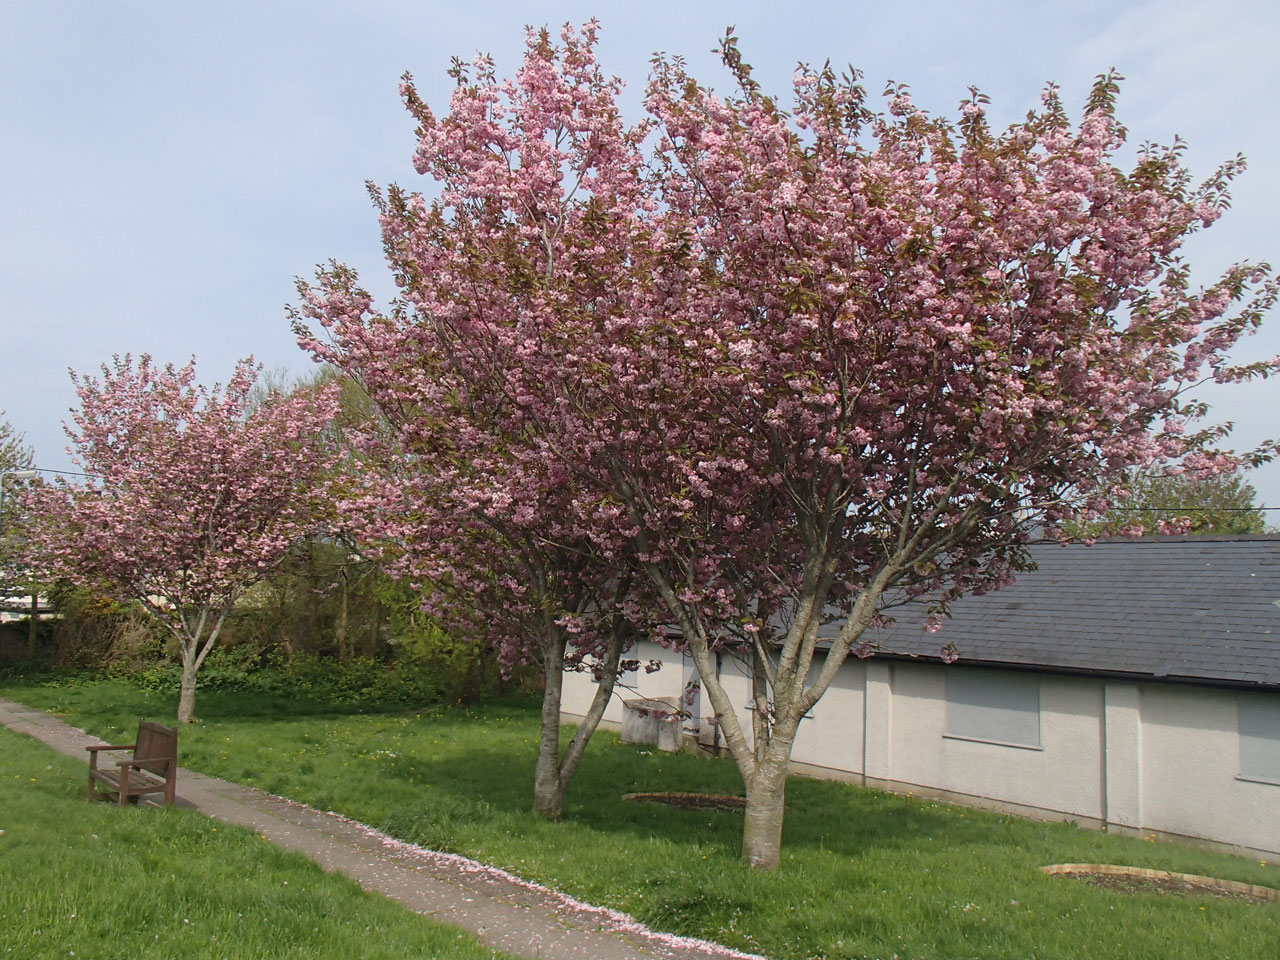 Trio of cherry trees in bloom